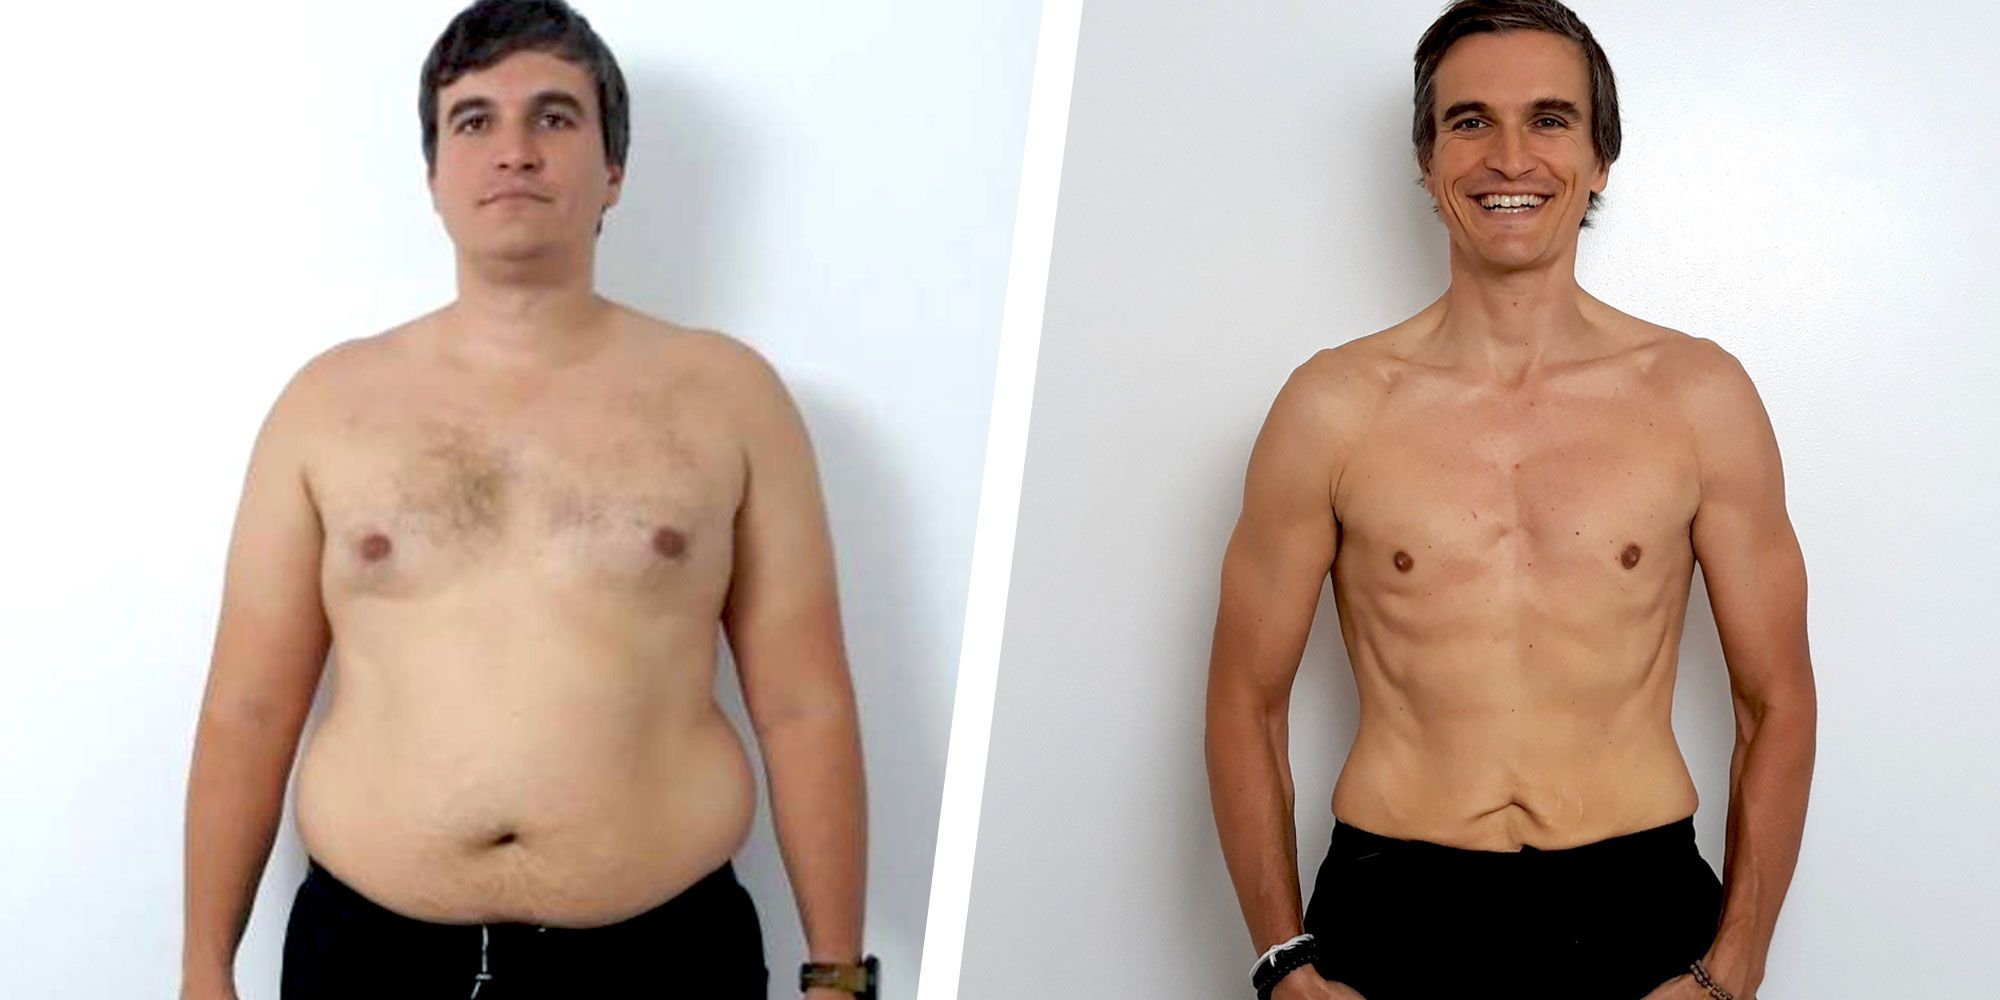 20 Simple Changes Helped This Guy Lose Nearly 20 Pounds in a Year